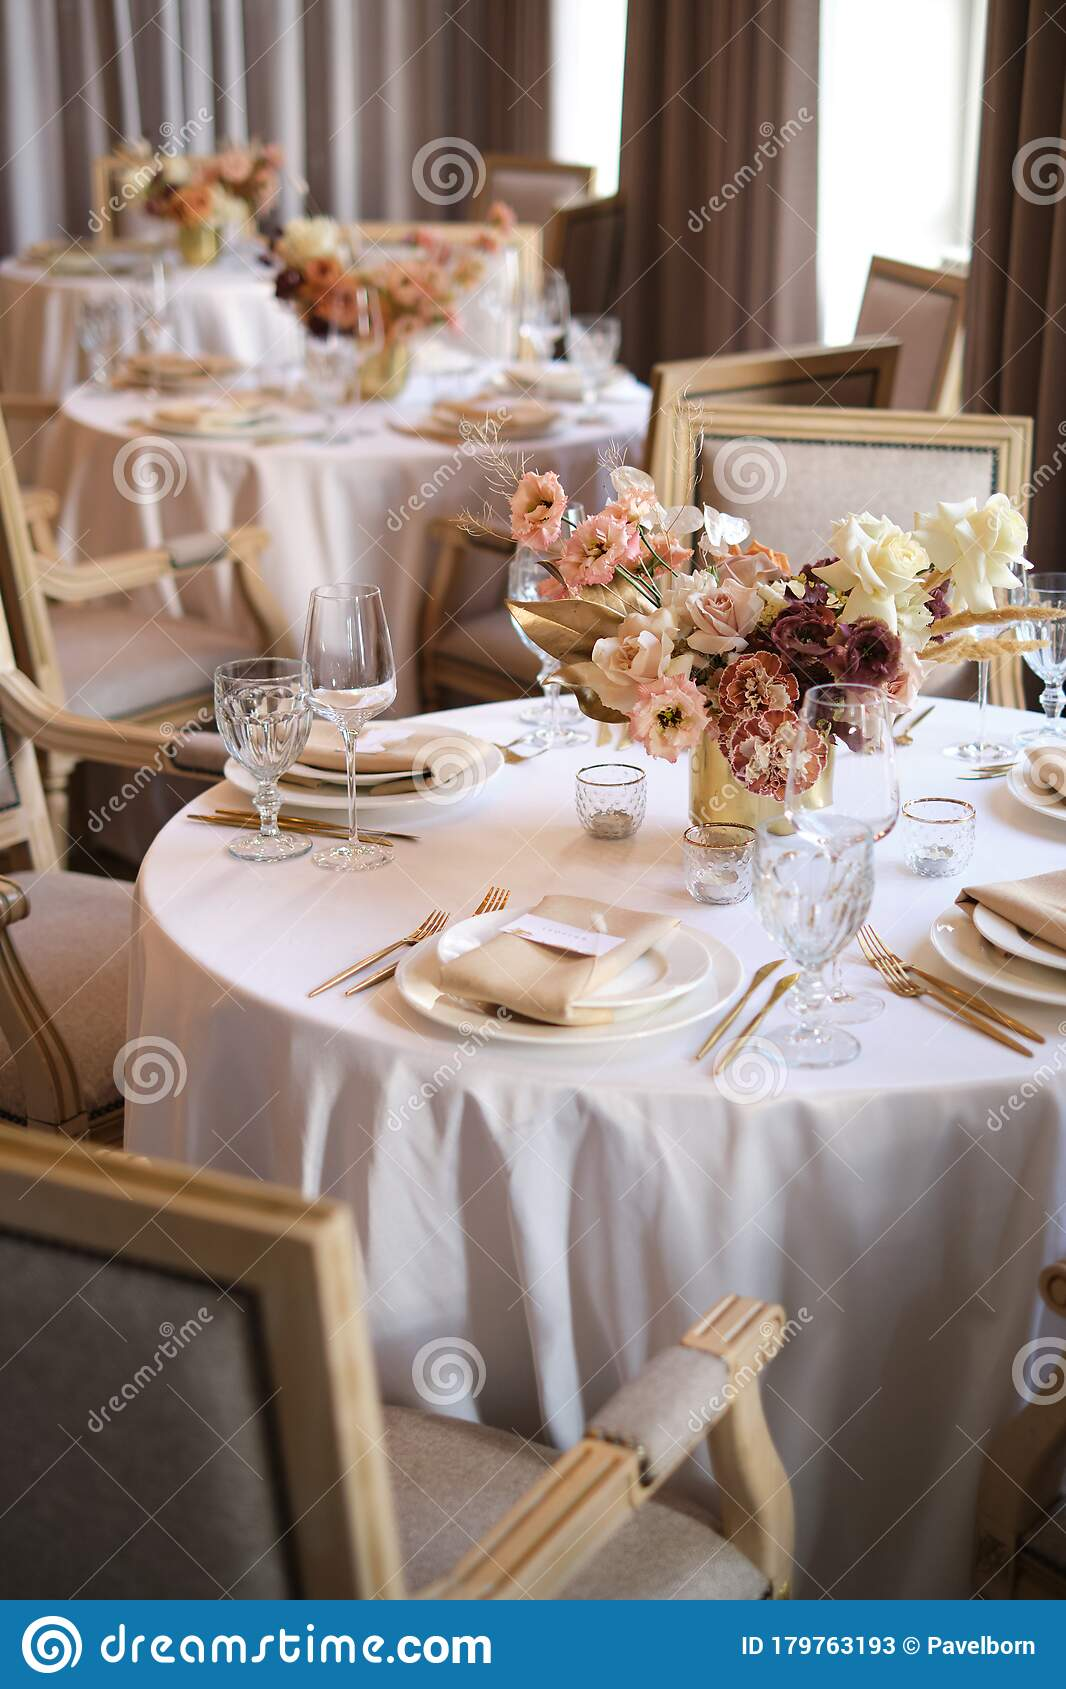 Luxury Cozy Autumn Wedding Table Decoration In The Restaurant Fresh And Dried Flowers Roses Carnations Beautiful Table Setting Stock Image Image Of Bouquet Beautiful 179763193